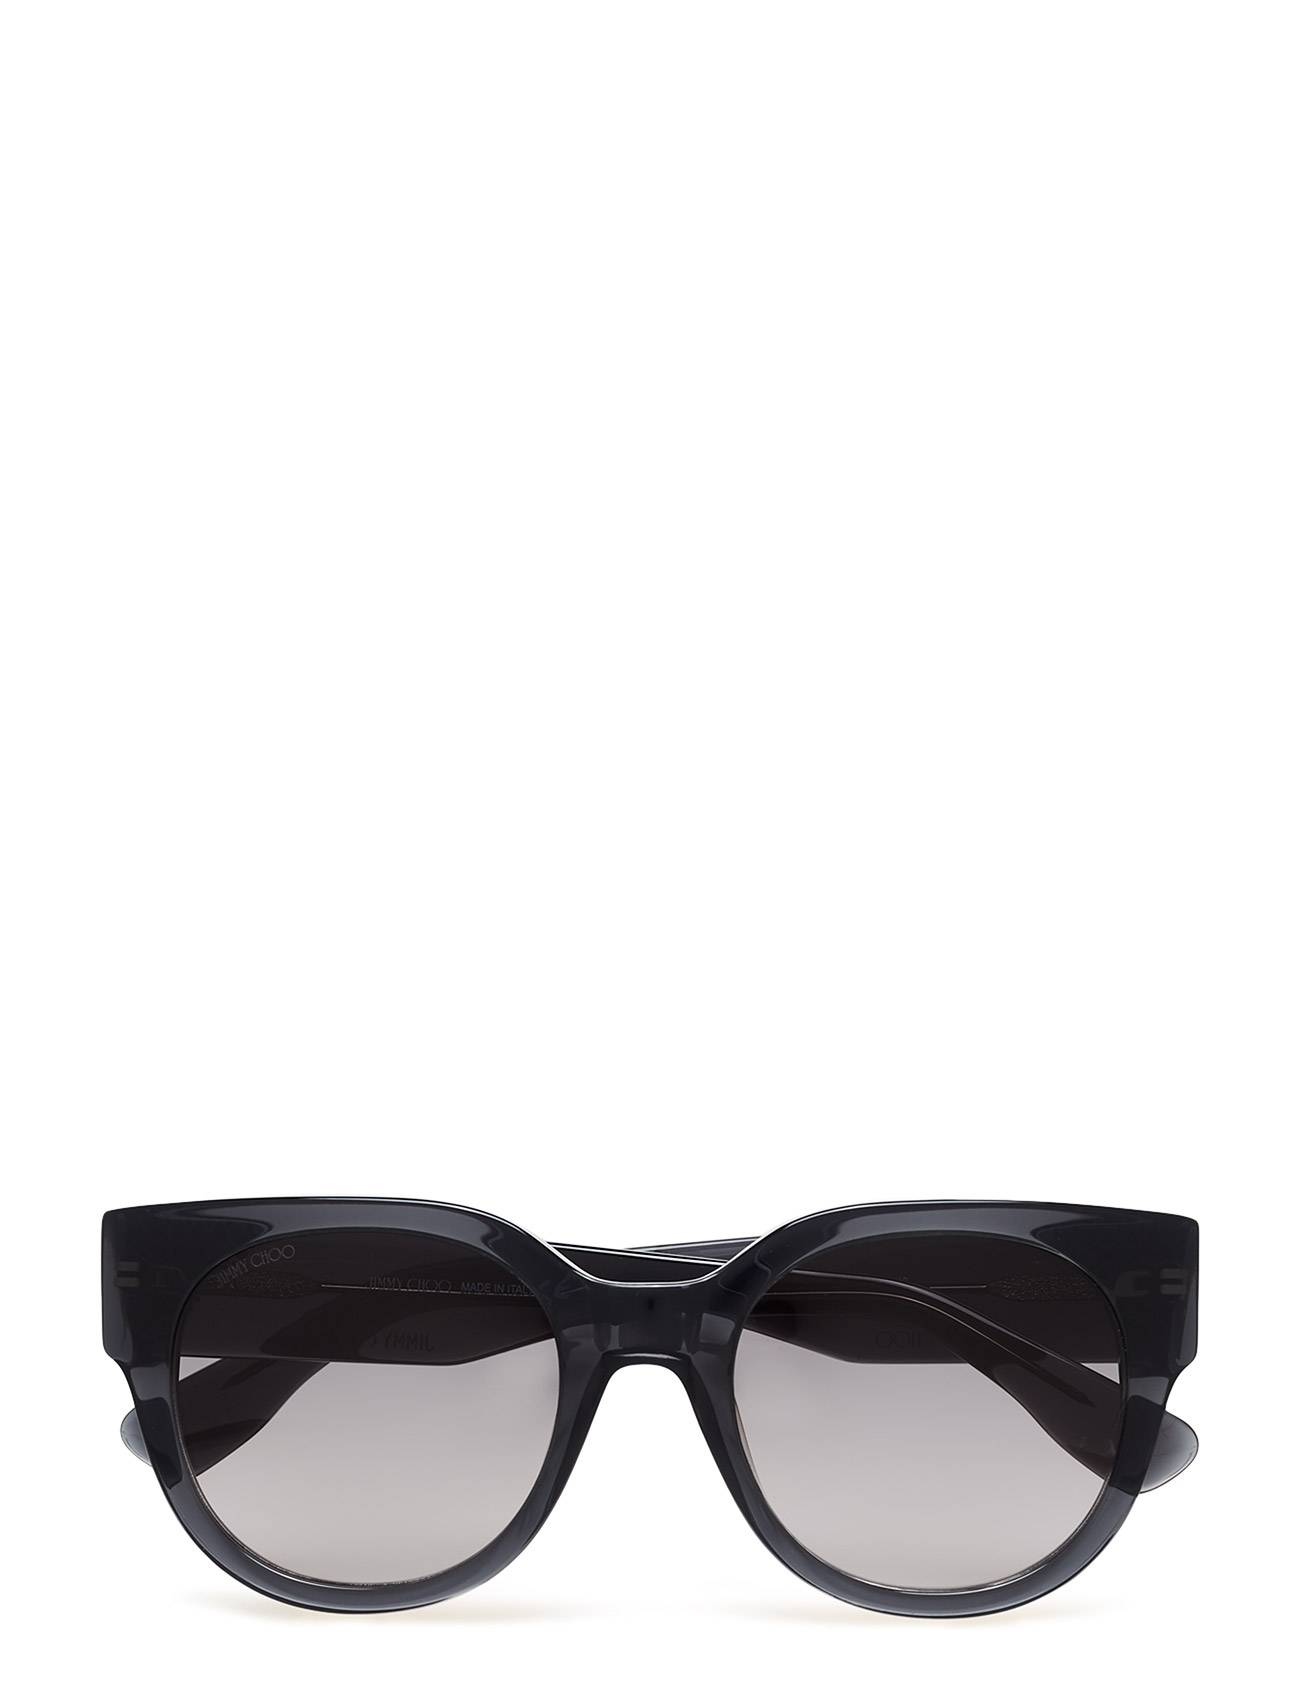 Jimmy Choo Sunglasses Ola/S